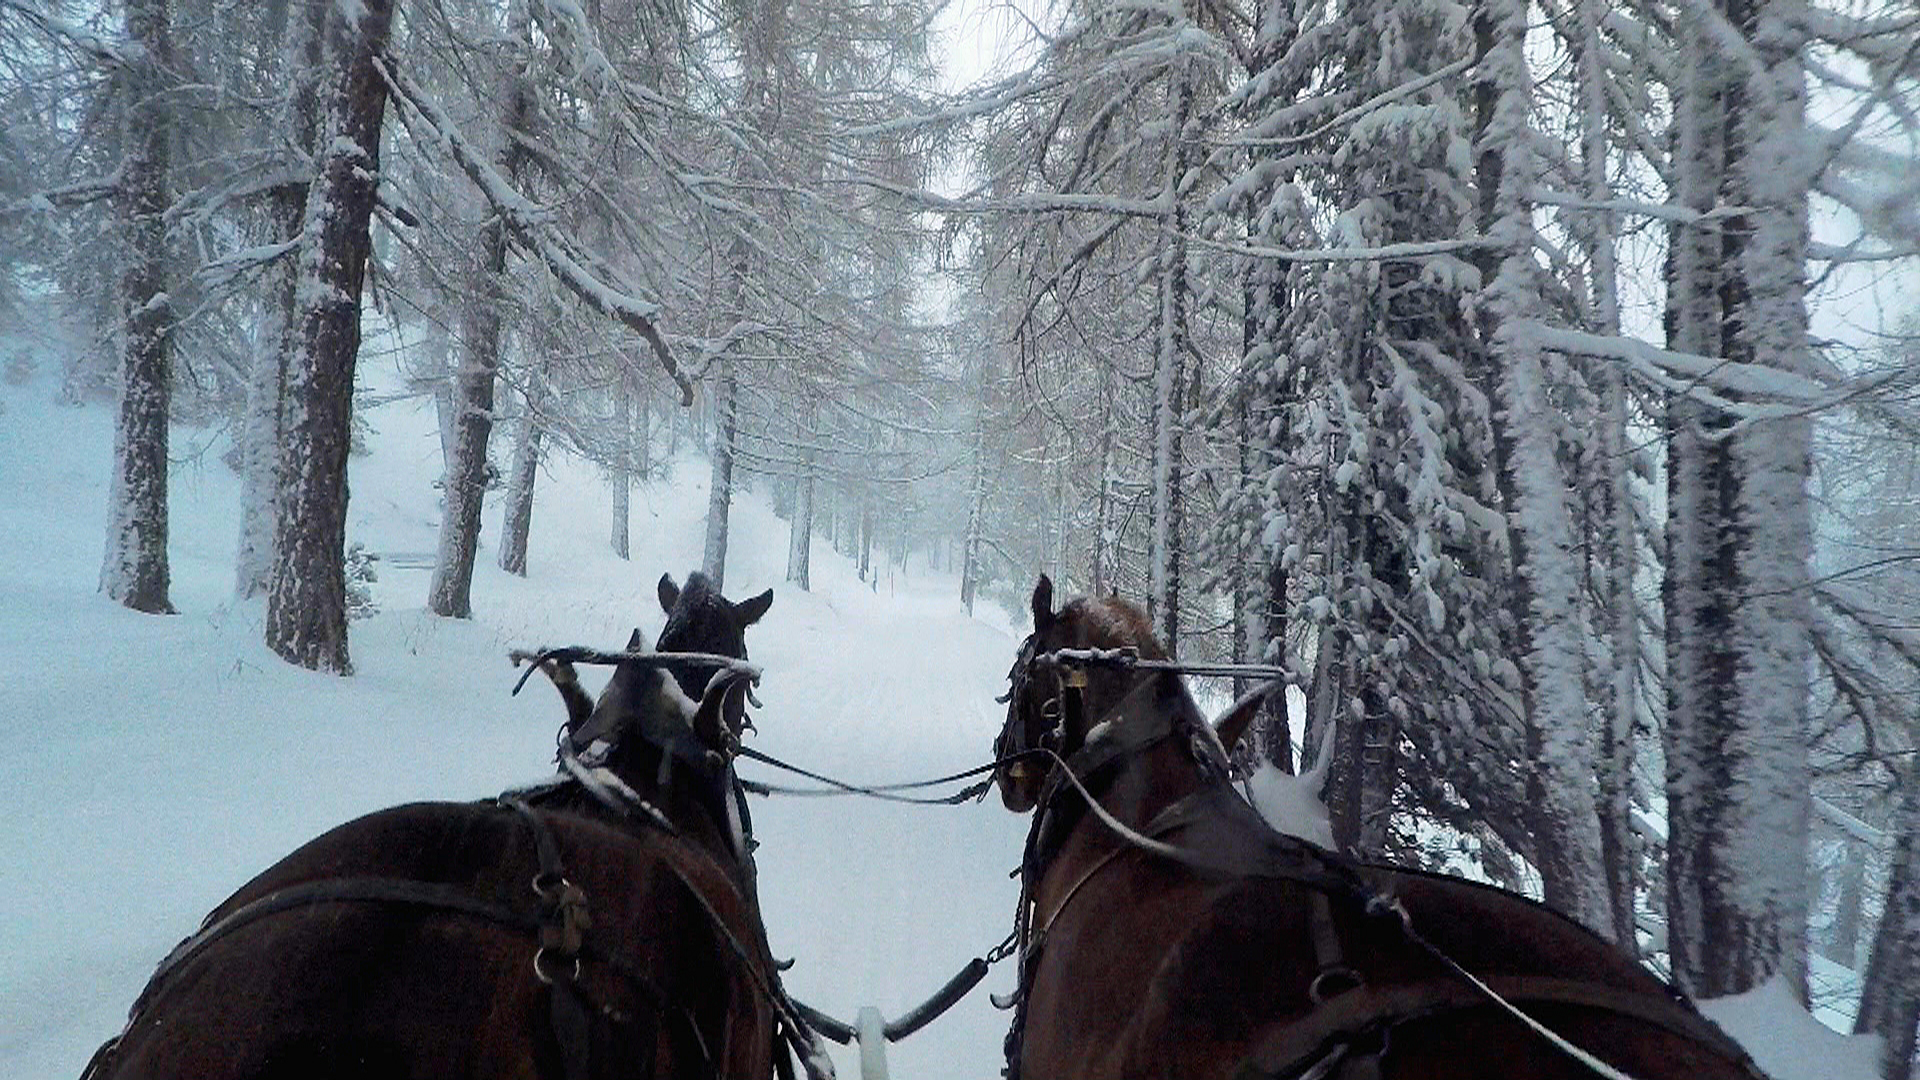 Horses pulling carriage in snow